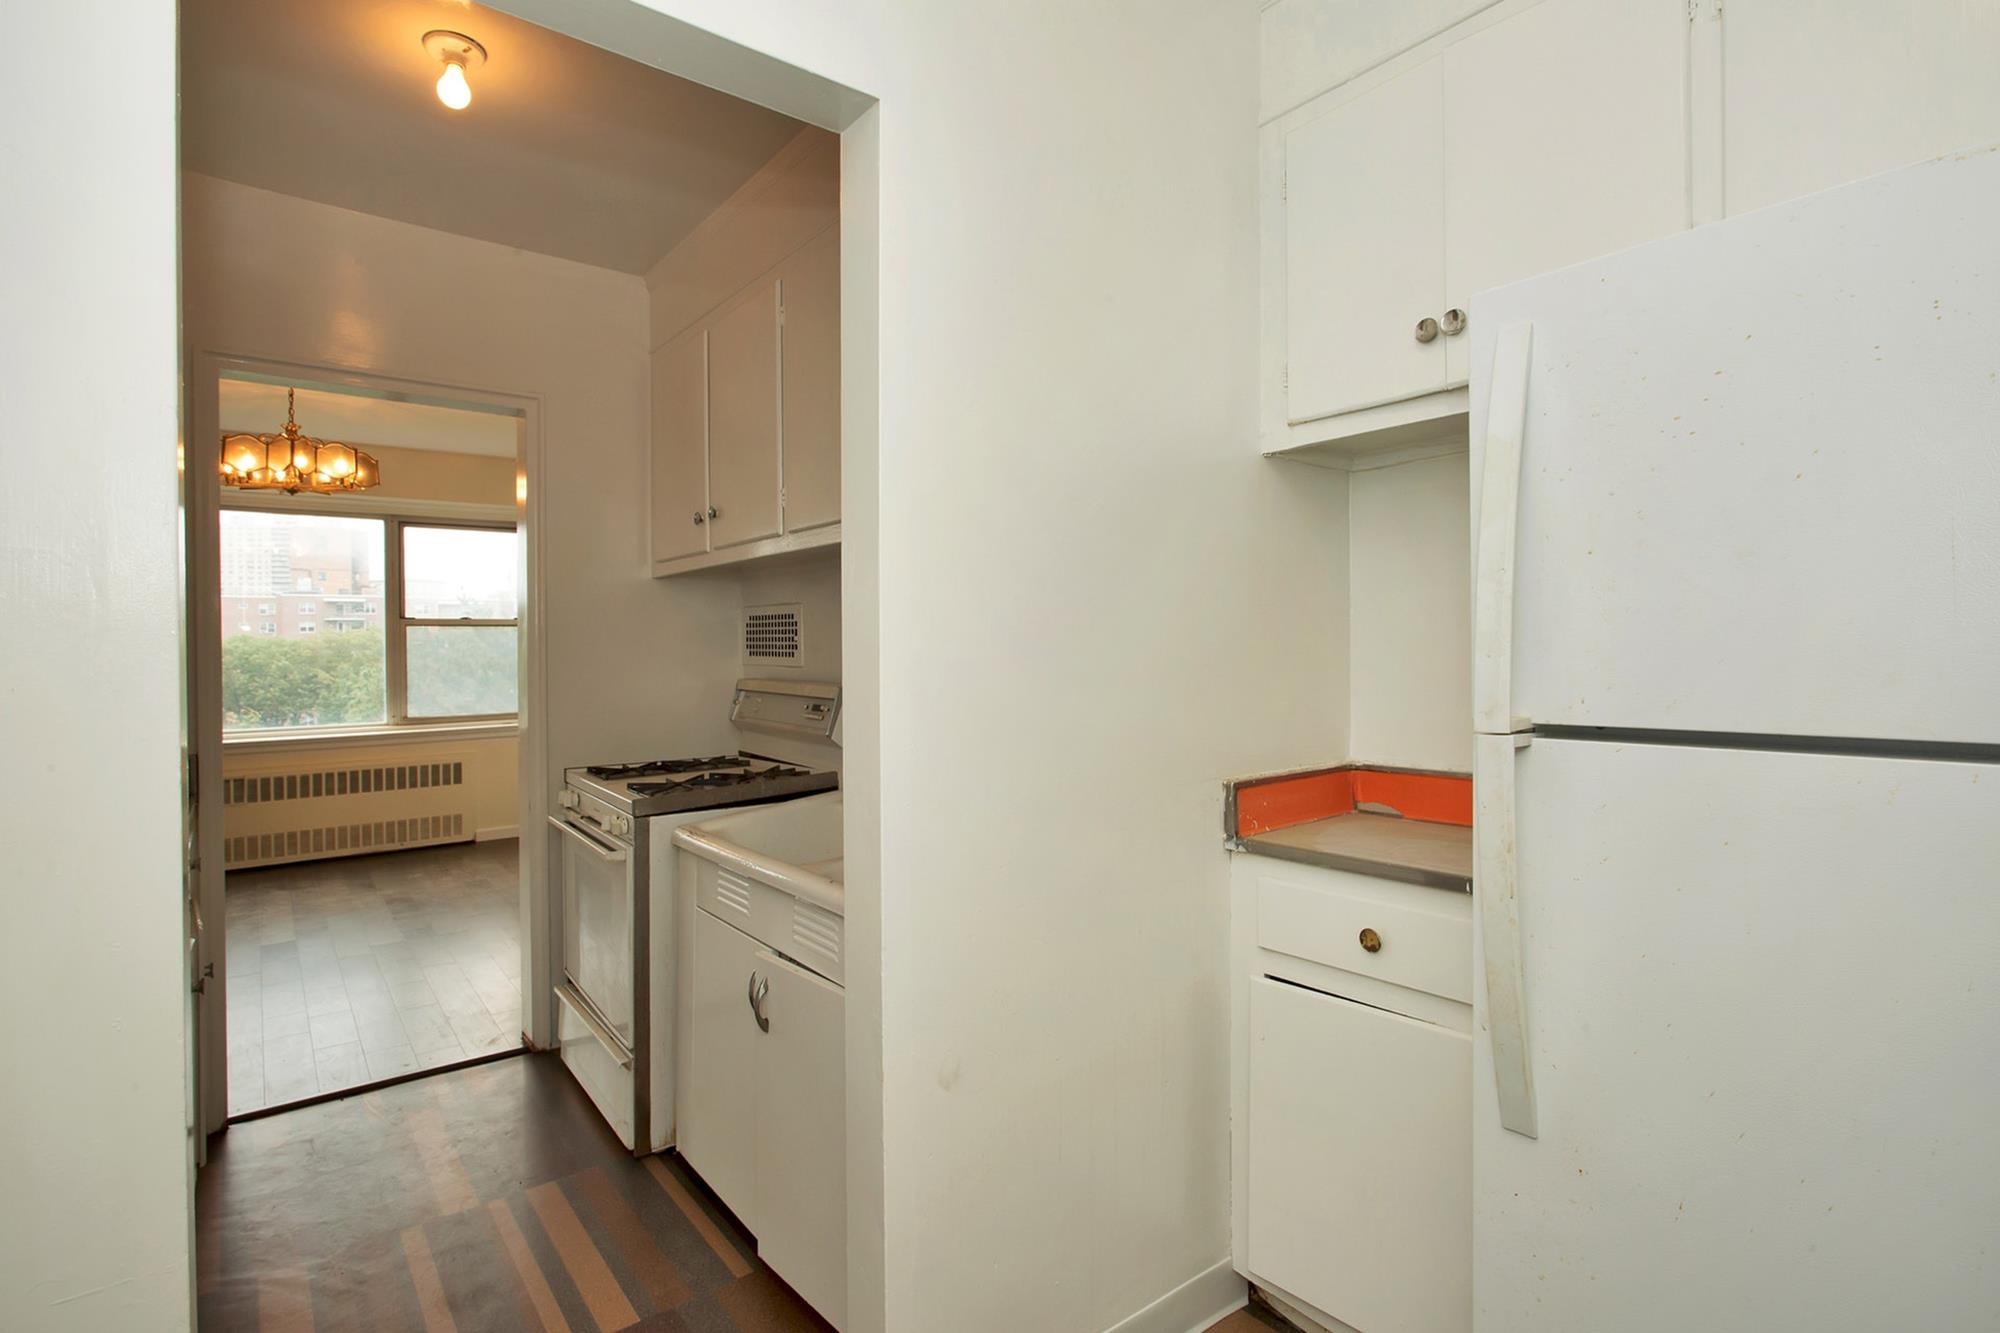 SOUTH RIVERDALE: Junior-4 (Convertible to 2-Bd.) Co-op w/ Balcony & 24-Hr. Doormen at 750 Kapppck St.